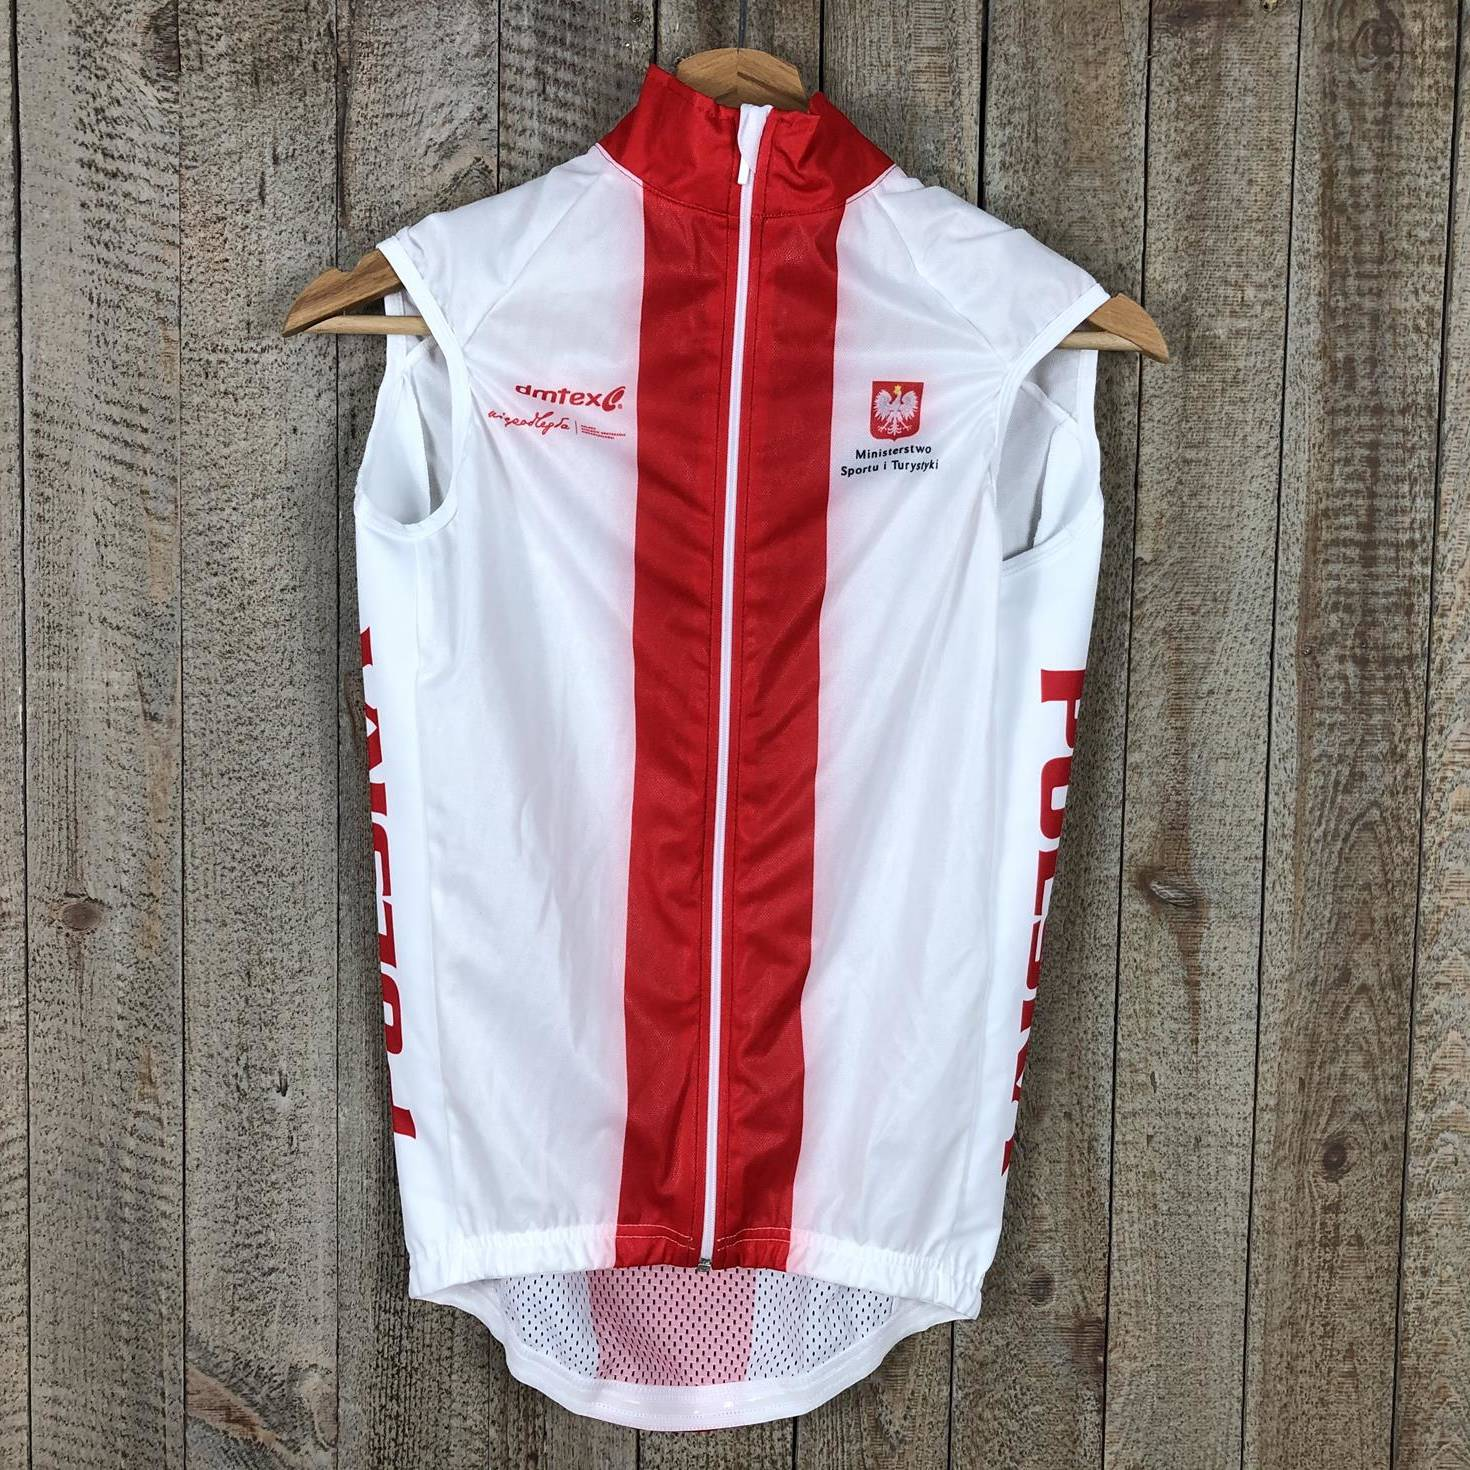 Wind Vest - Polish National Team 00003138 (1)